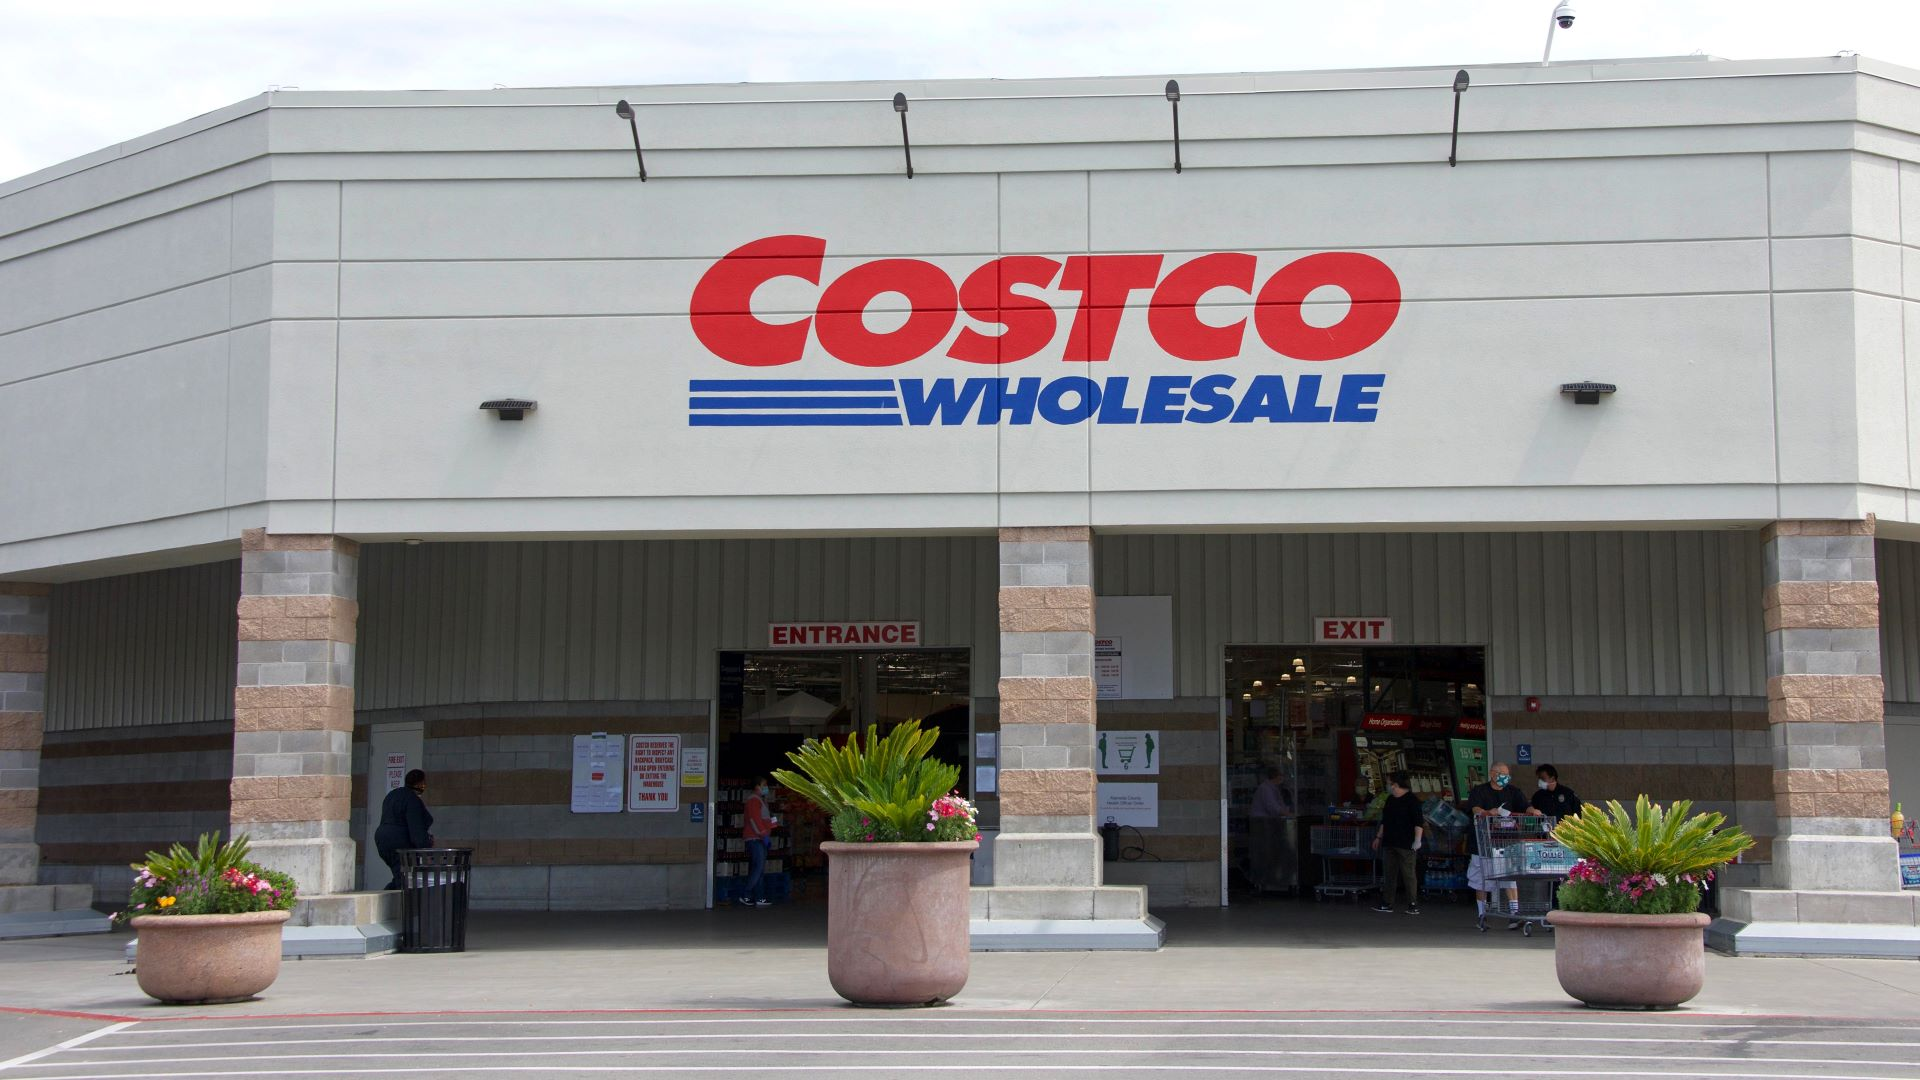 Front entrance to Costco Wholesale store.